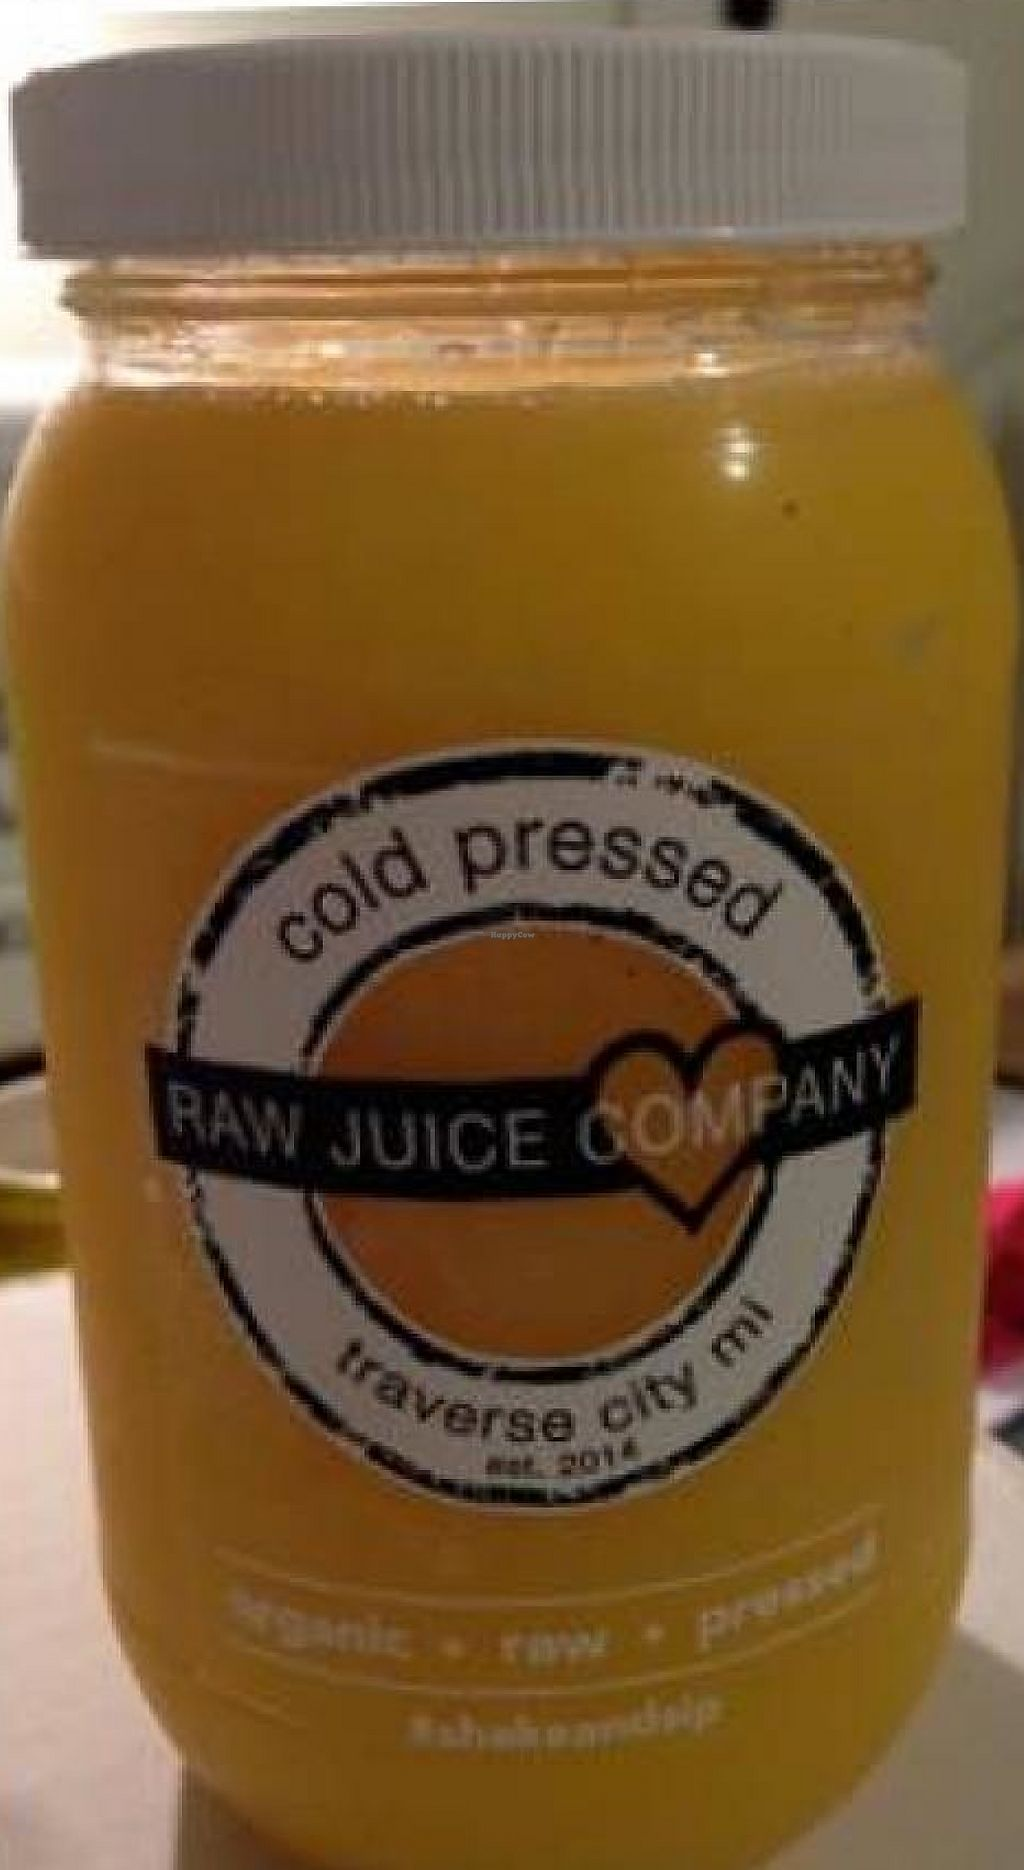 """Photo of Raw Juice Company  by <a href=""""/members/profile/community"""">community</a> <br/>Raw Juice Company <br/> July 23, 2014  - <a href='/contact/abuse/image/49177/204827'>Report</a>"""